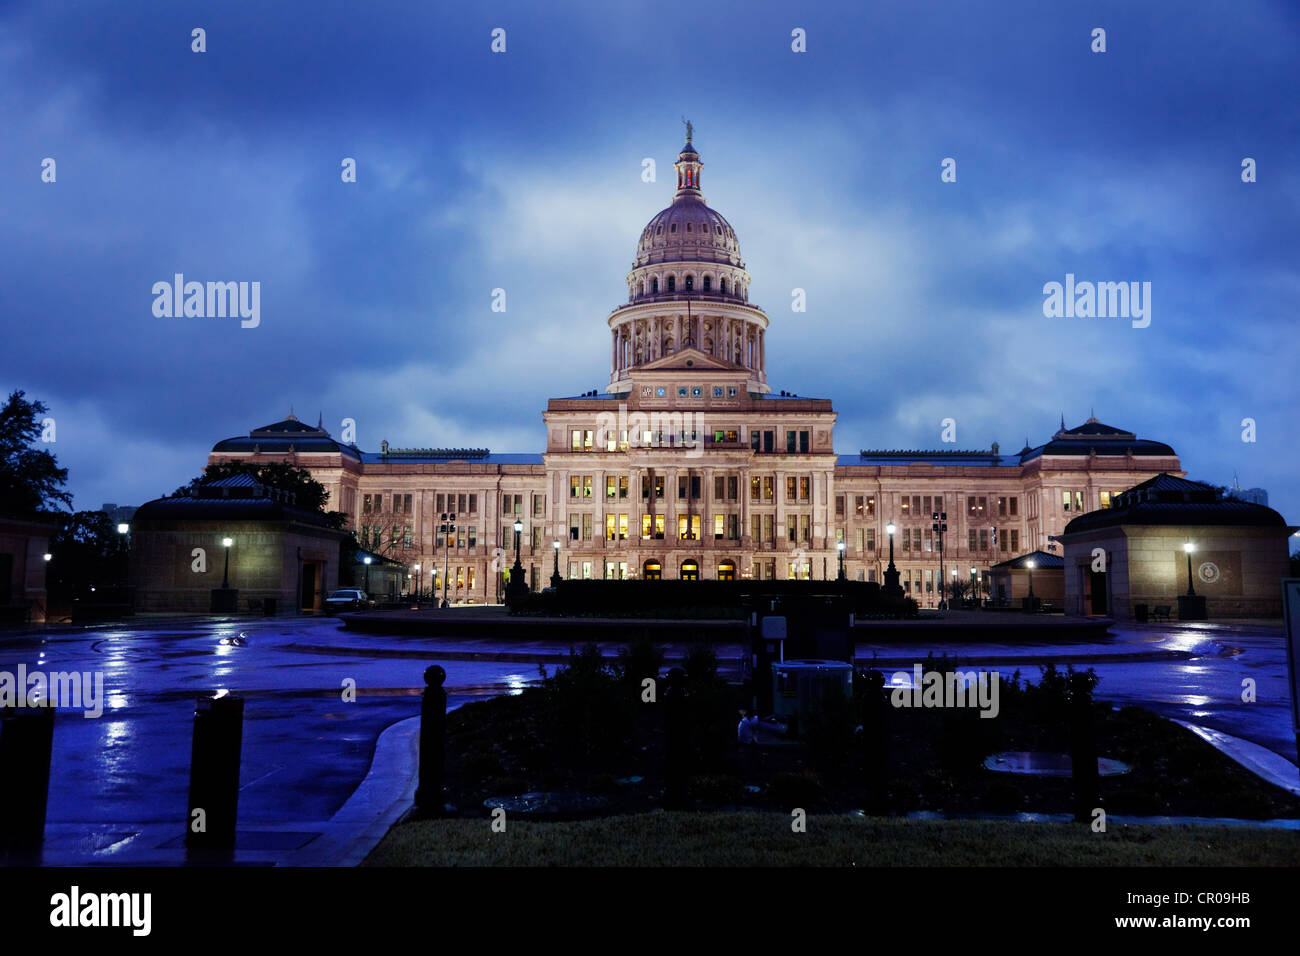 Texas State Capitol building in Austin on a rainy evening - Stock Image